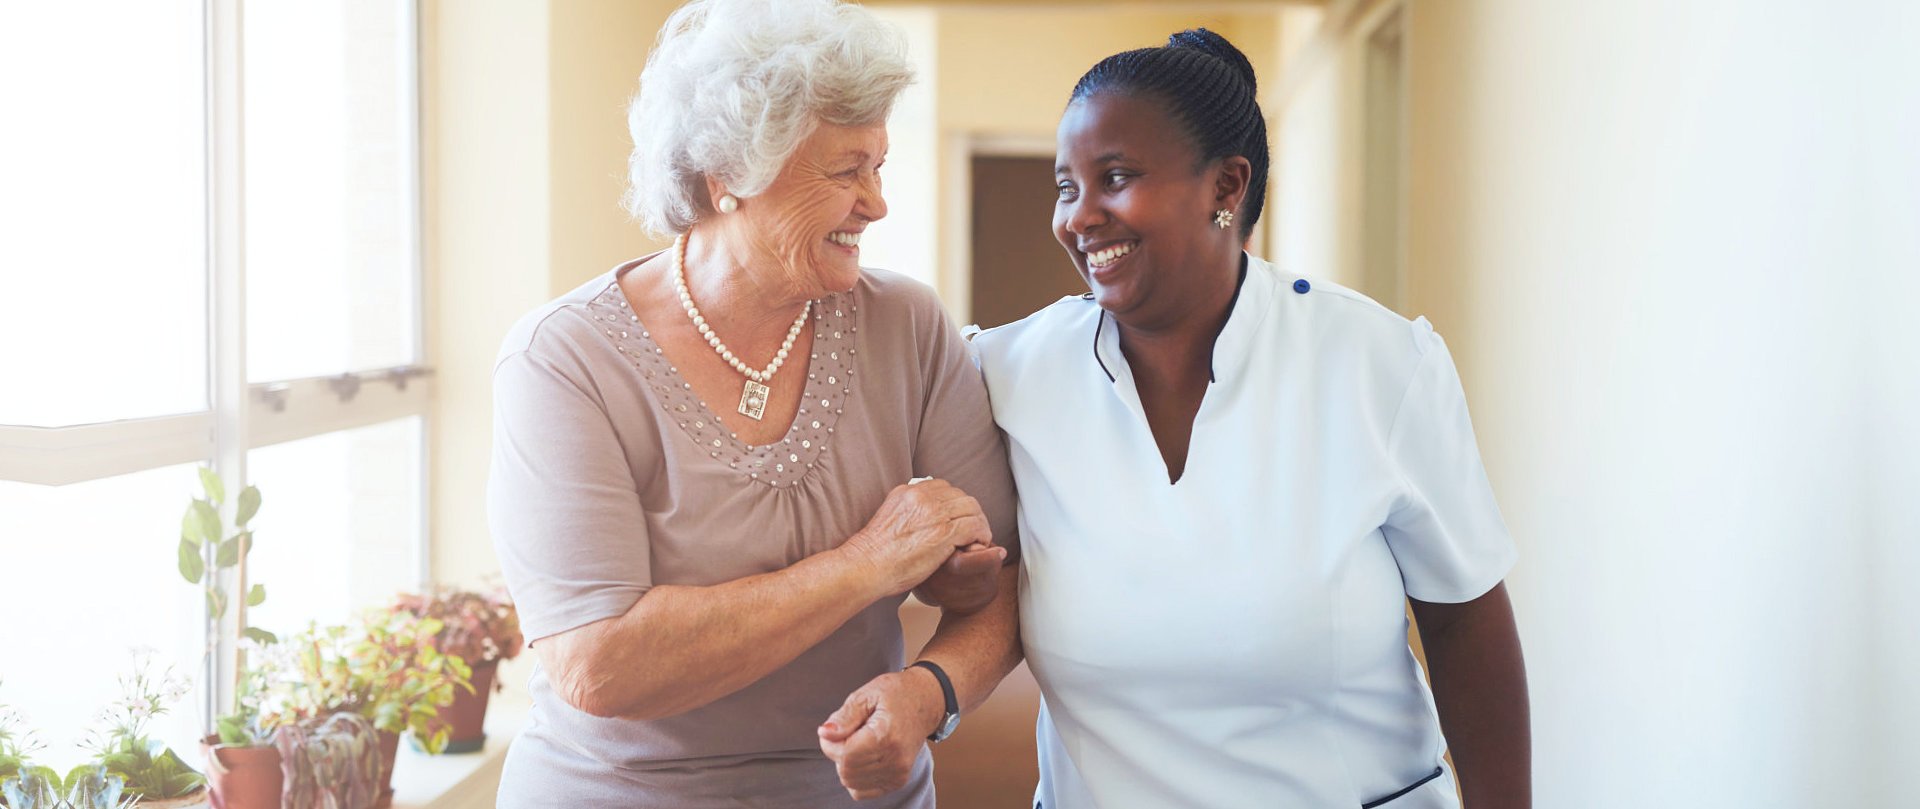 senior woman with caregiver smiling at each other